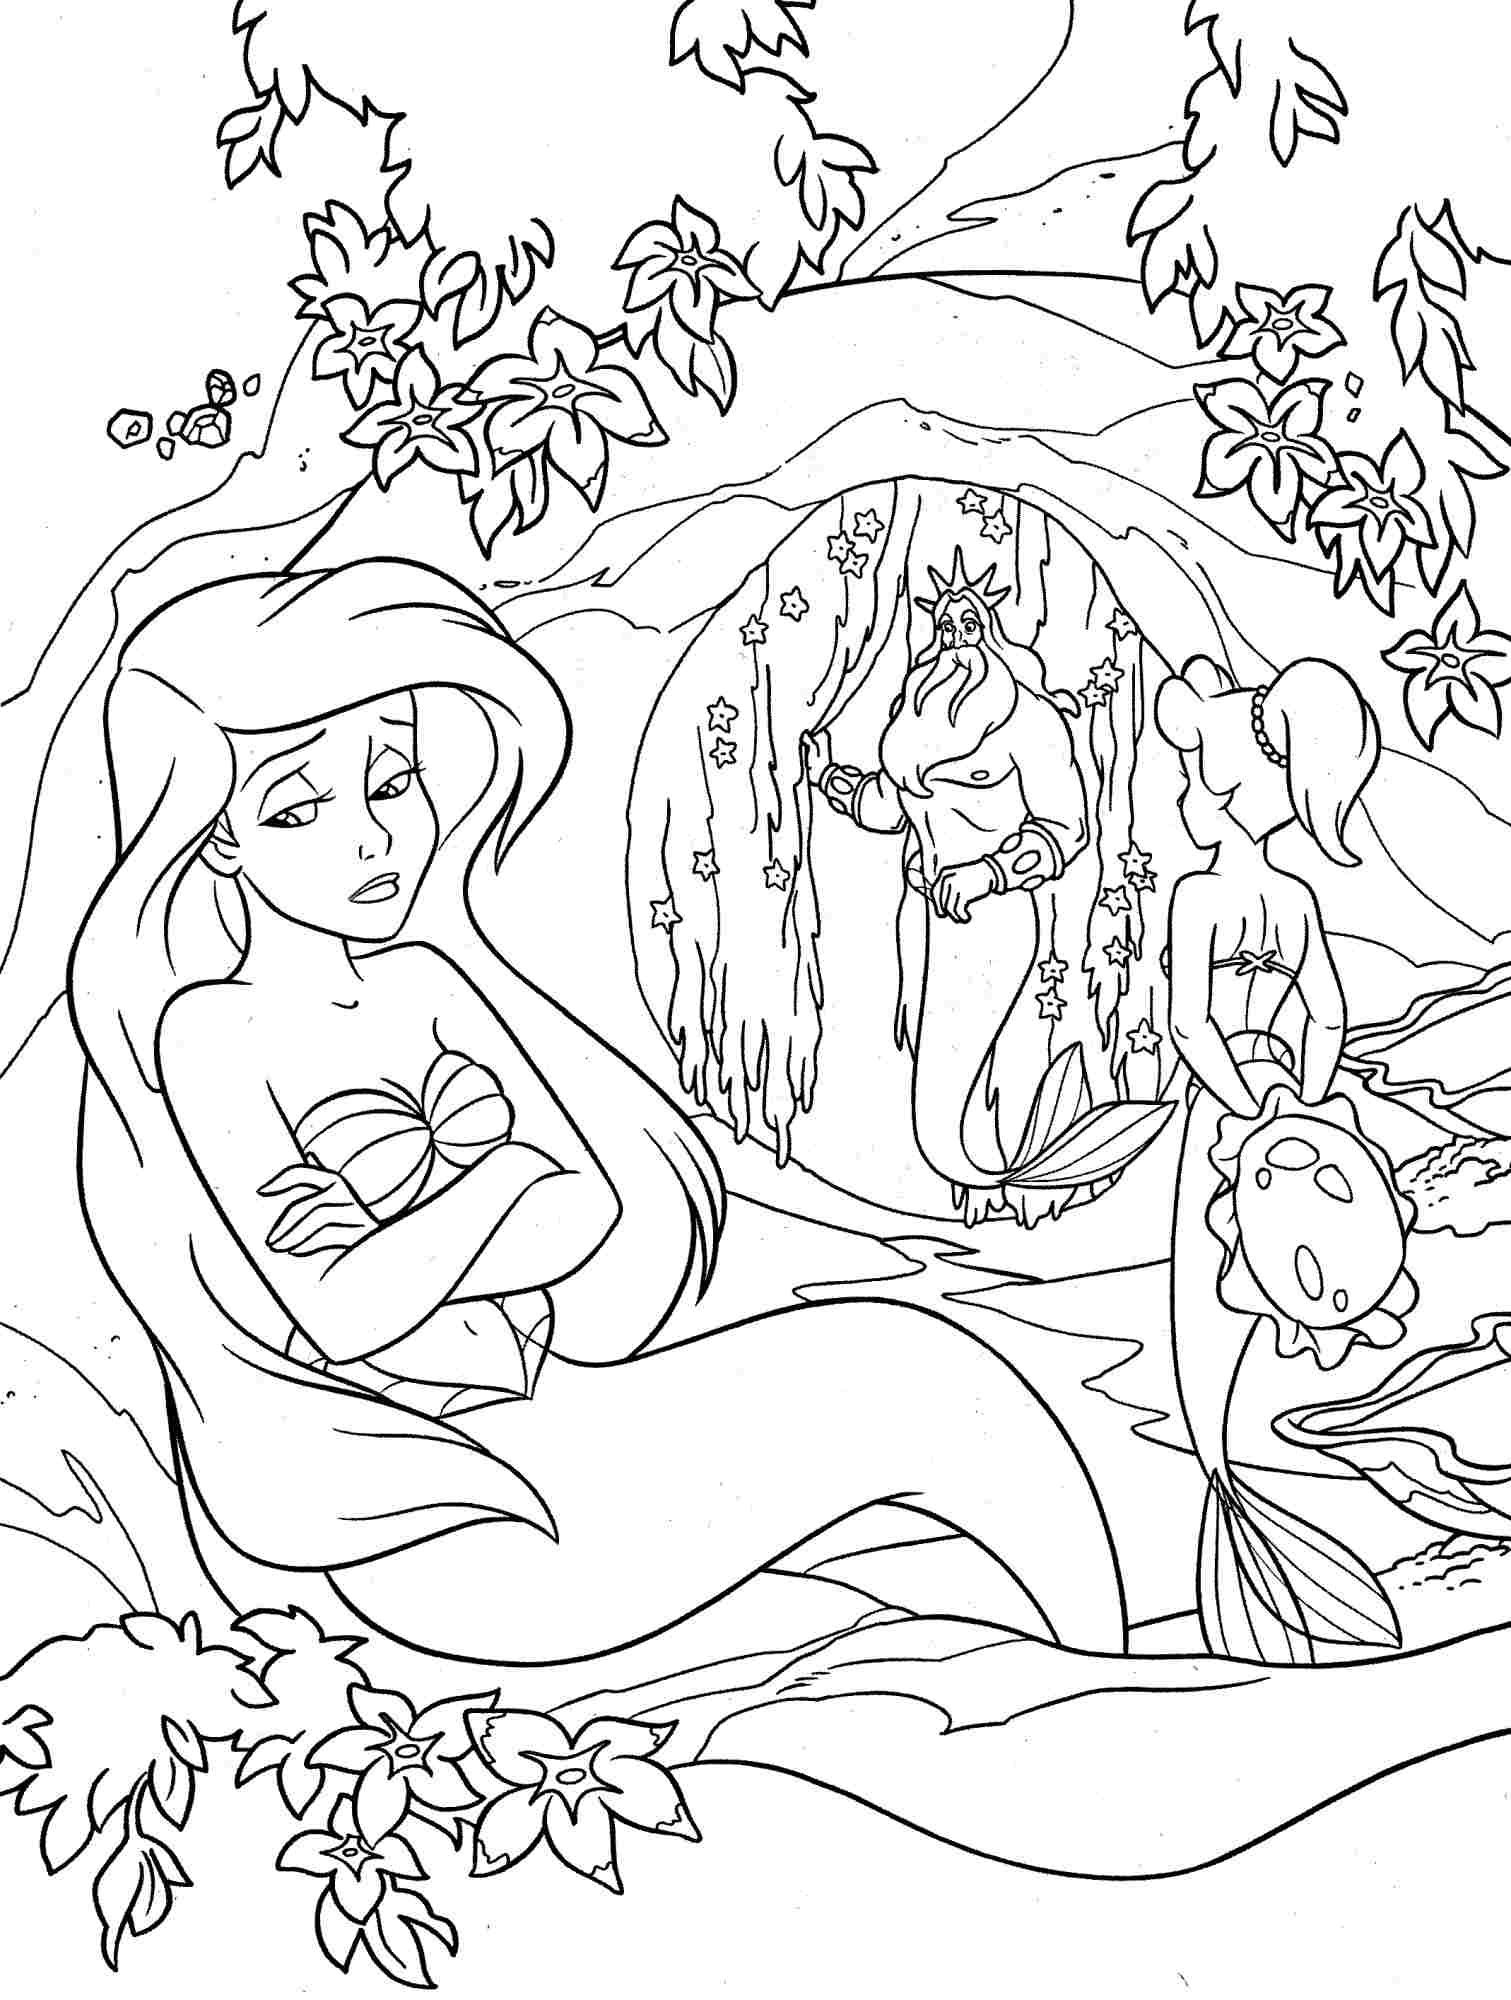 Podobny Obraz Ariel Coloring Pages Princess Coloring Pages Mermaid Coloring Pages